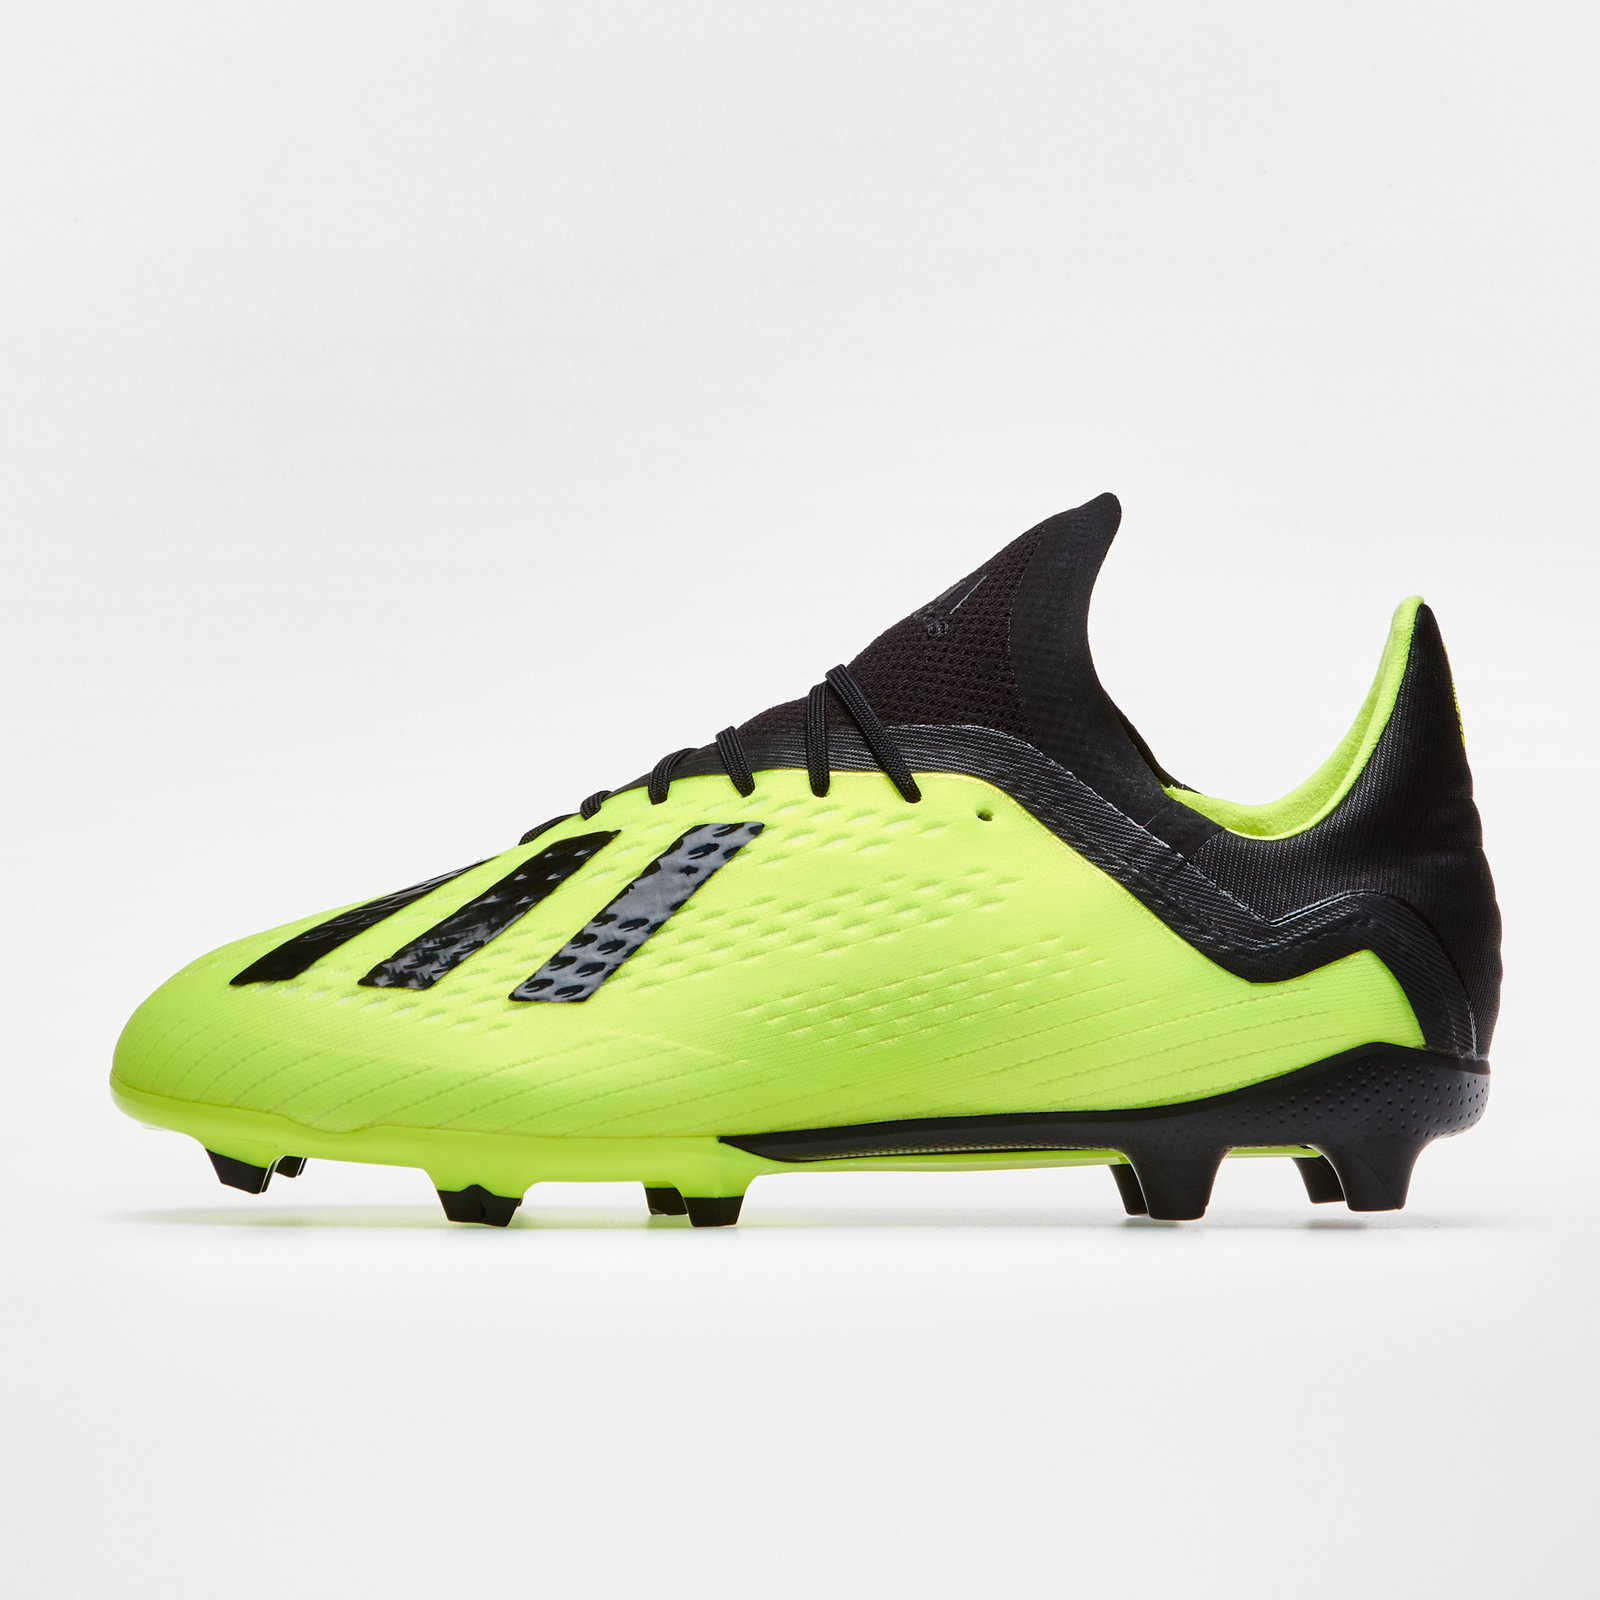 485088942a73 adidas X 18.1 Firm Ground Kids Football Boots Studs Trainers Sports Shoes  Yellow